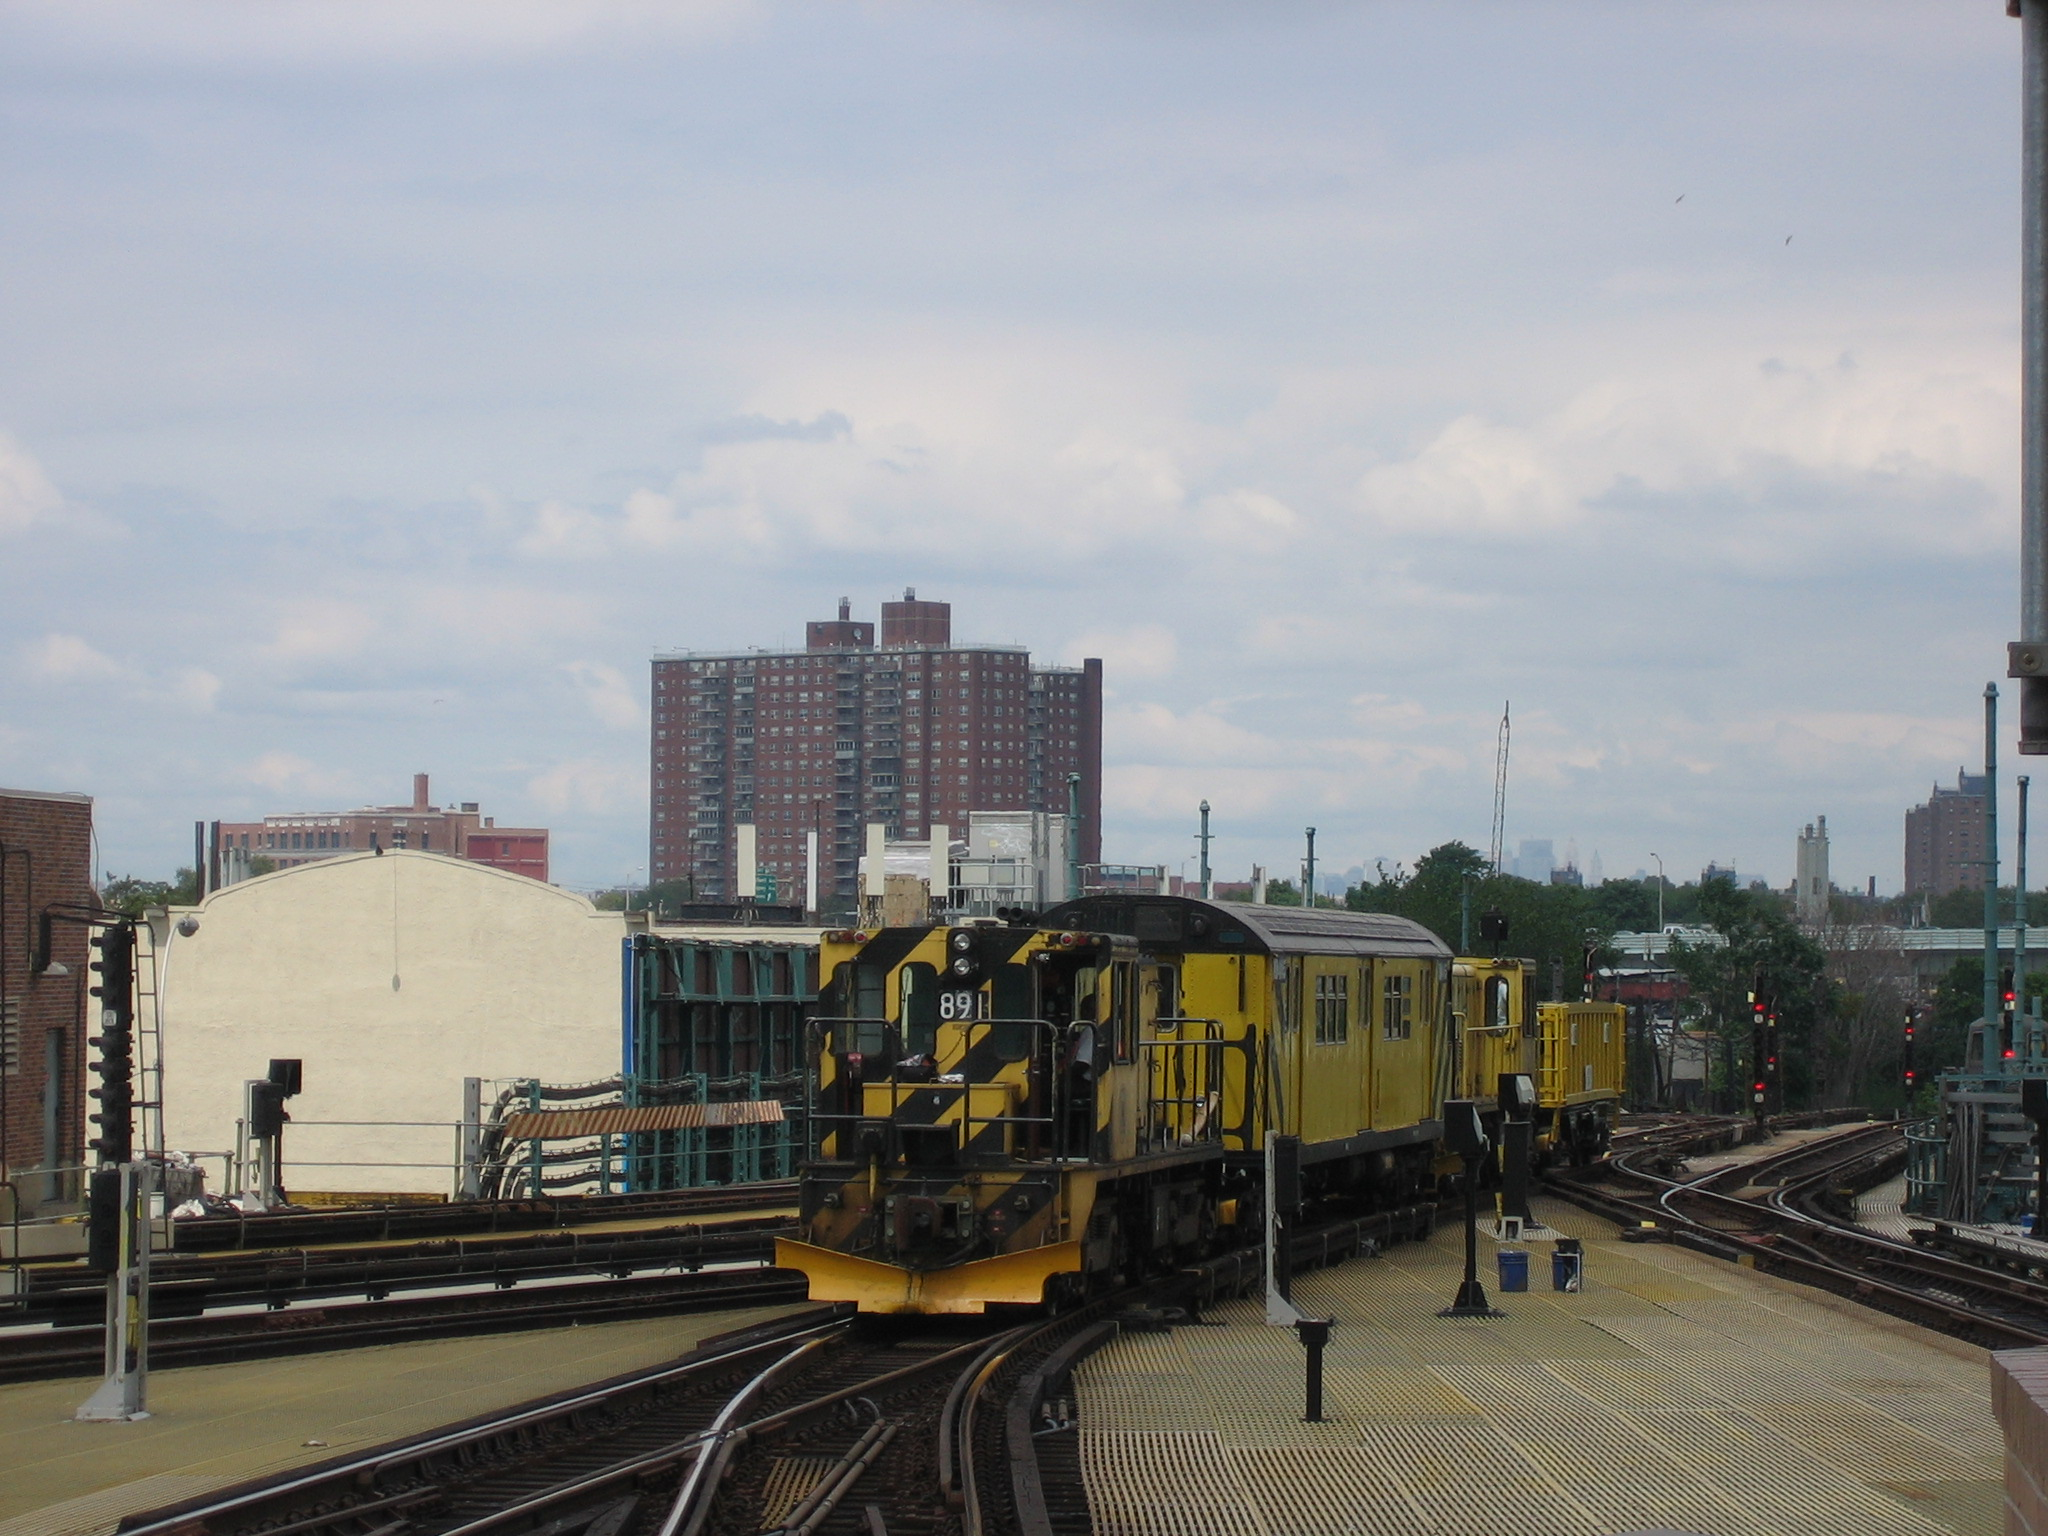 (746k, 2048x1536)<br><b>Country:</b> United States<br><b>City:</b> New York<br><b>System:</b> New York City Transit<br><b>Location:</b> Coney Island/Stillwell Avenue<br><b>Route:</b> Work Service<br><b>Car:</b> R-77 Locomotive  891 <br><b>Photo by:</b> Michael Hodurski<br><b>Date:</b> 8/4/2006<br><b>Viewed (this week/total):</b> 1 / 1601